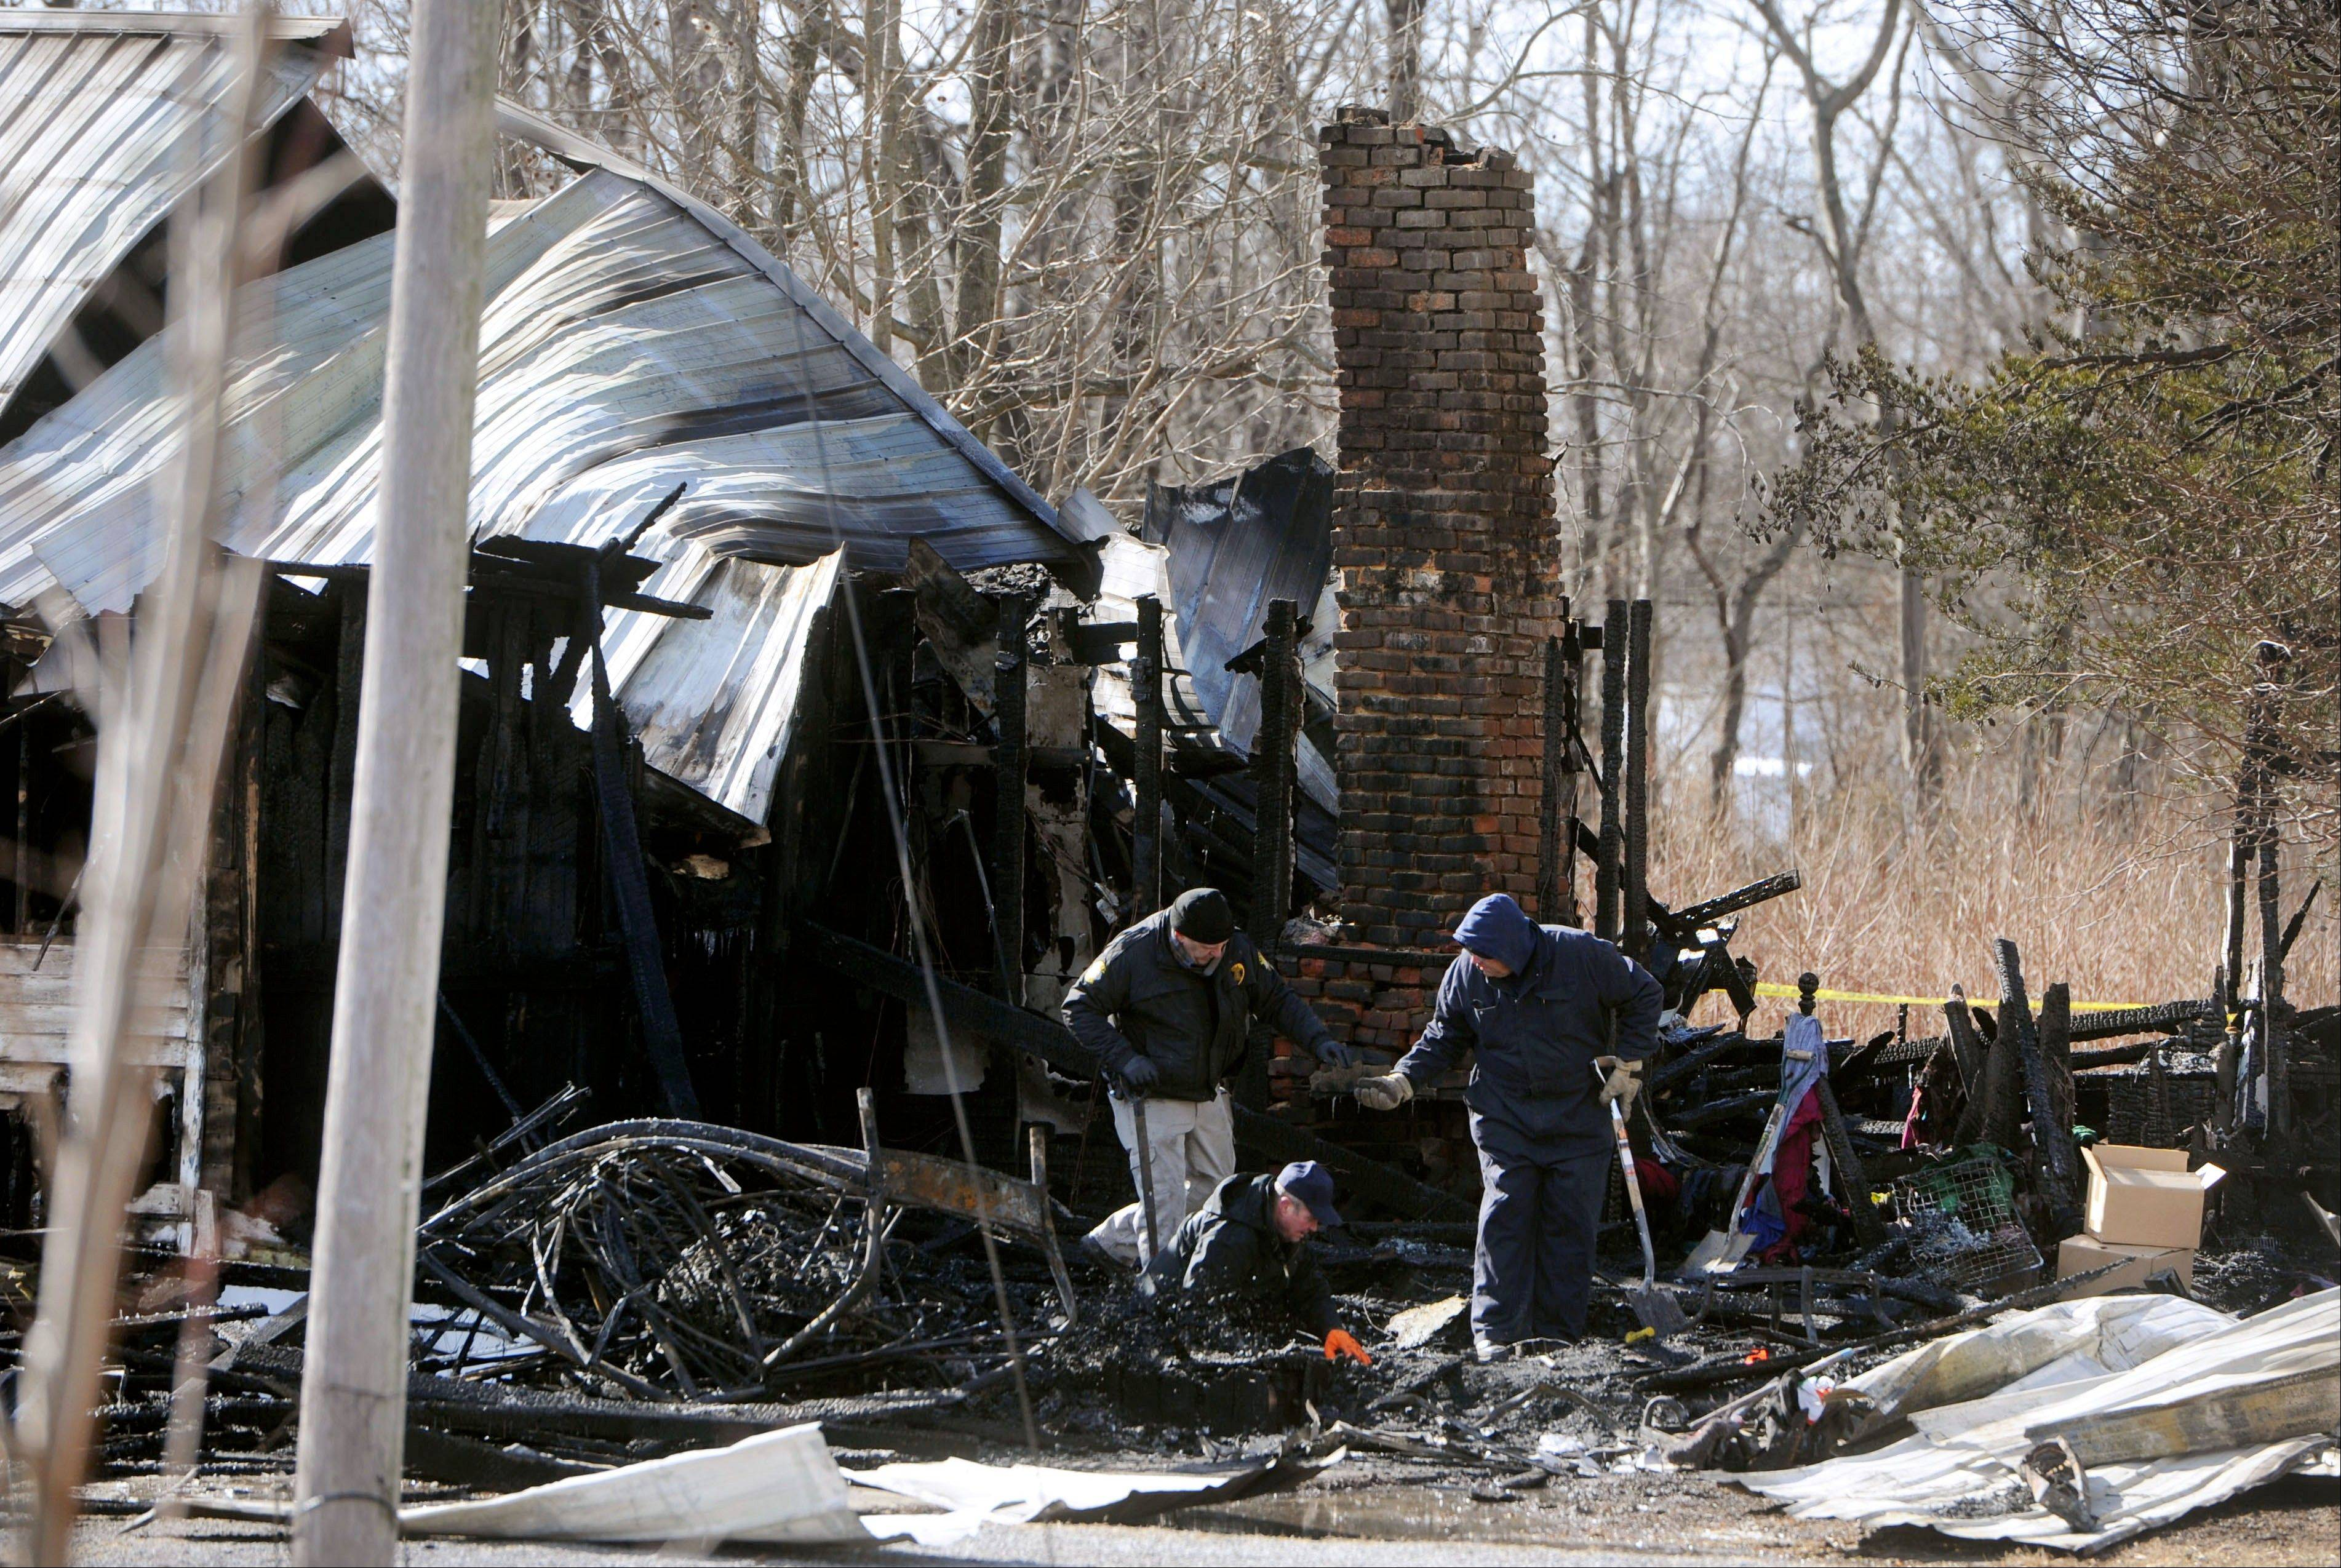 Alan Gregory, with the Kentucky Fire Marshal's office, at bottom, digs through debris Thursday Jan. 30, 2014, from a house fire that killed nine members of an 11-member family.